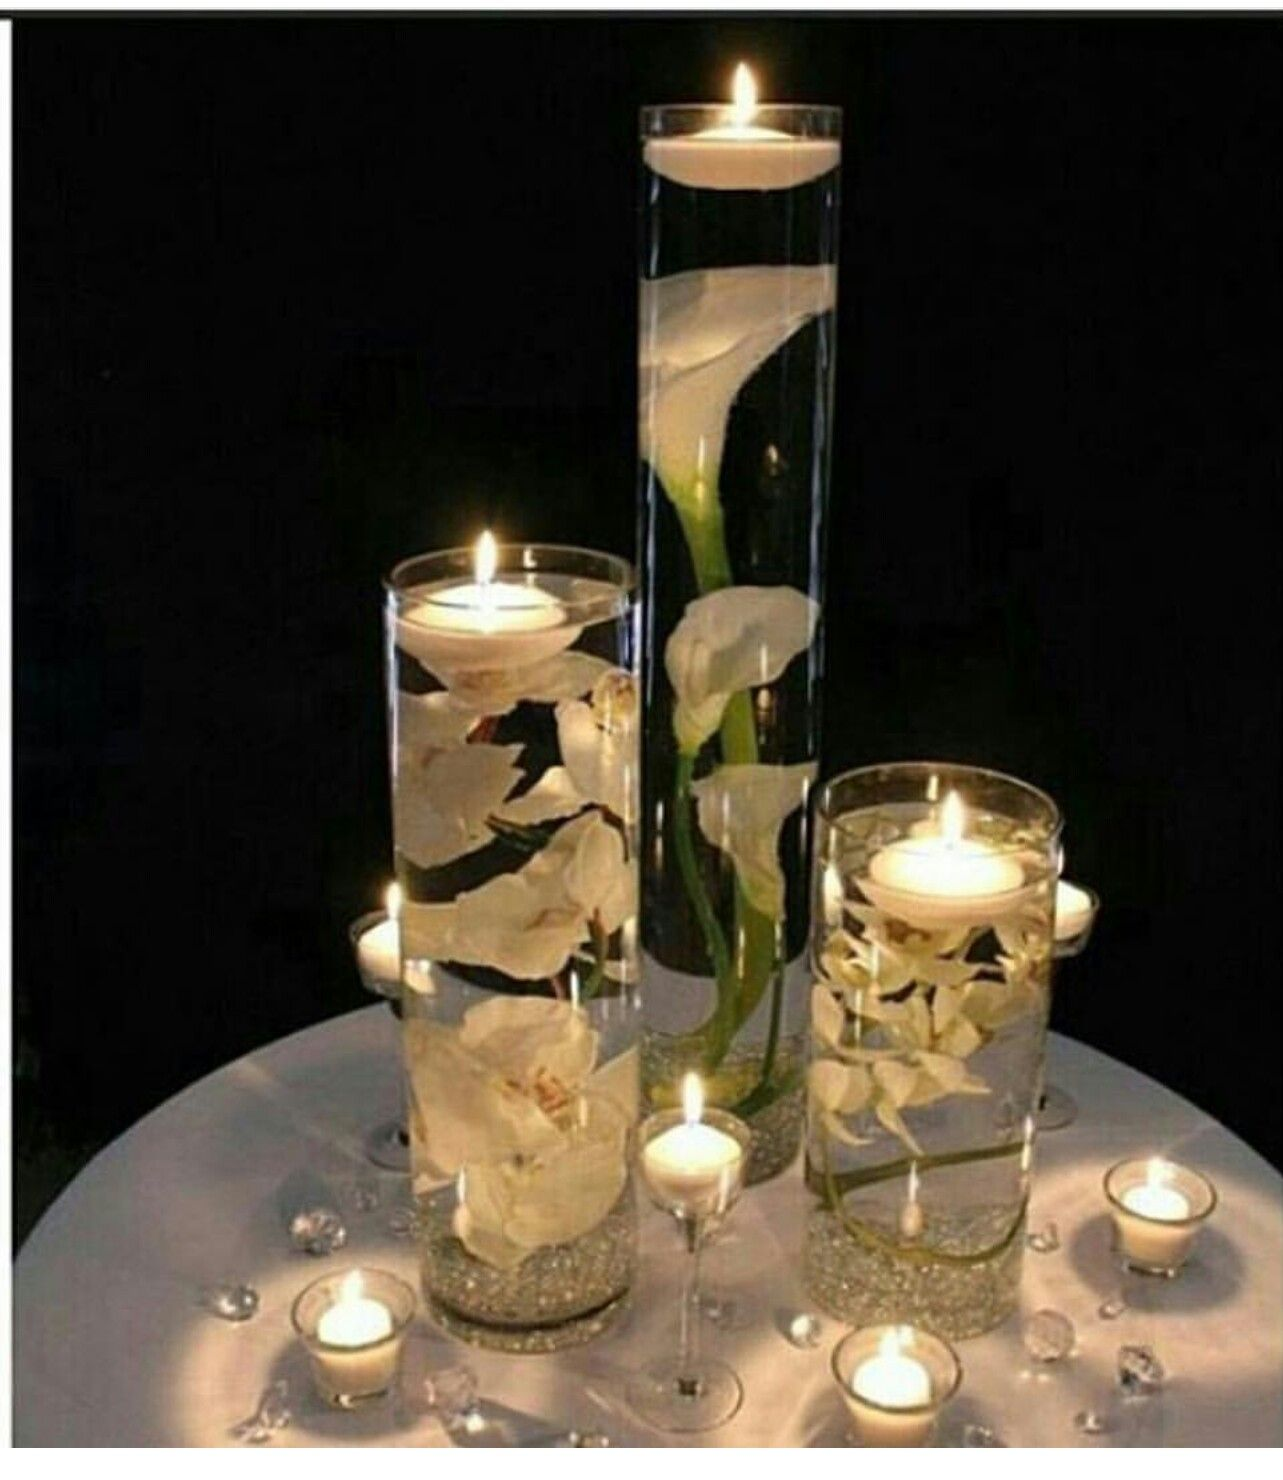 Easy doityourself centerpieces perfect for weddings or intimate